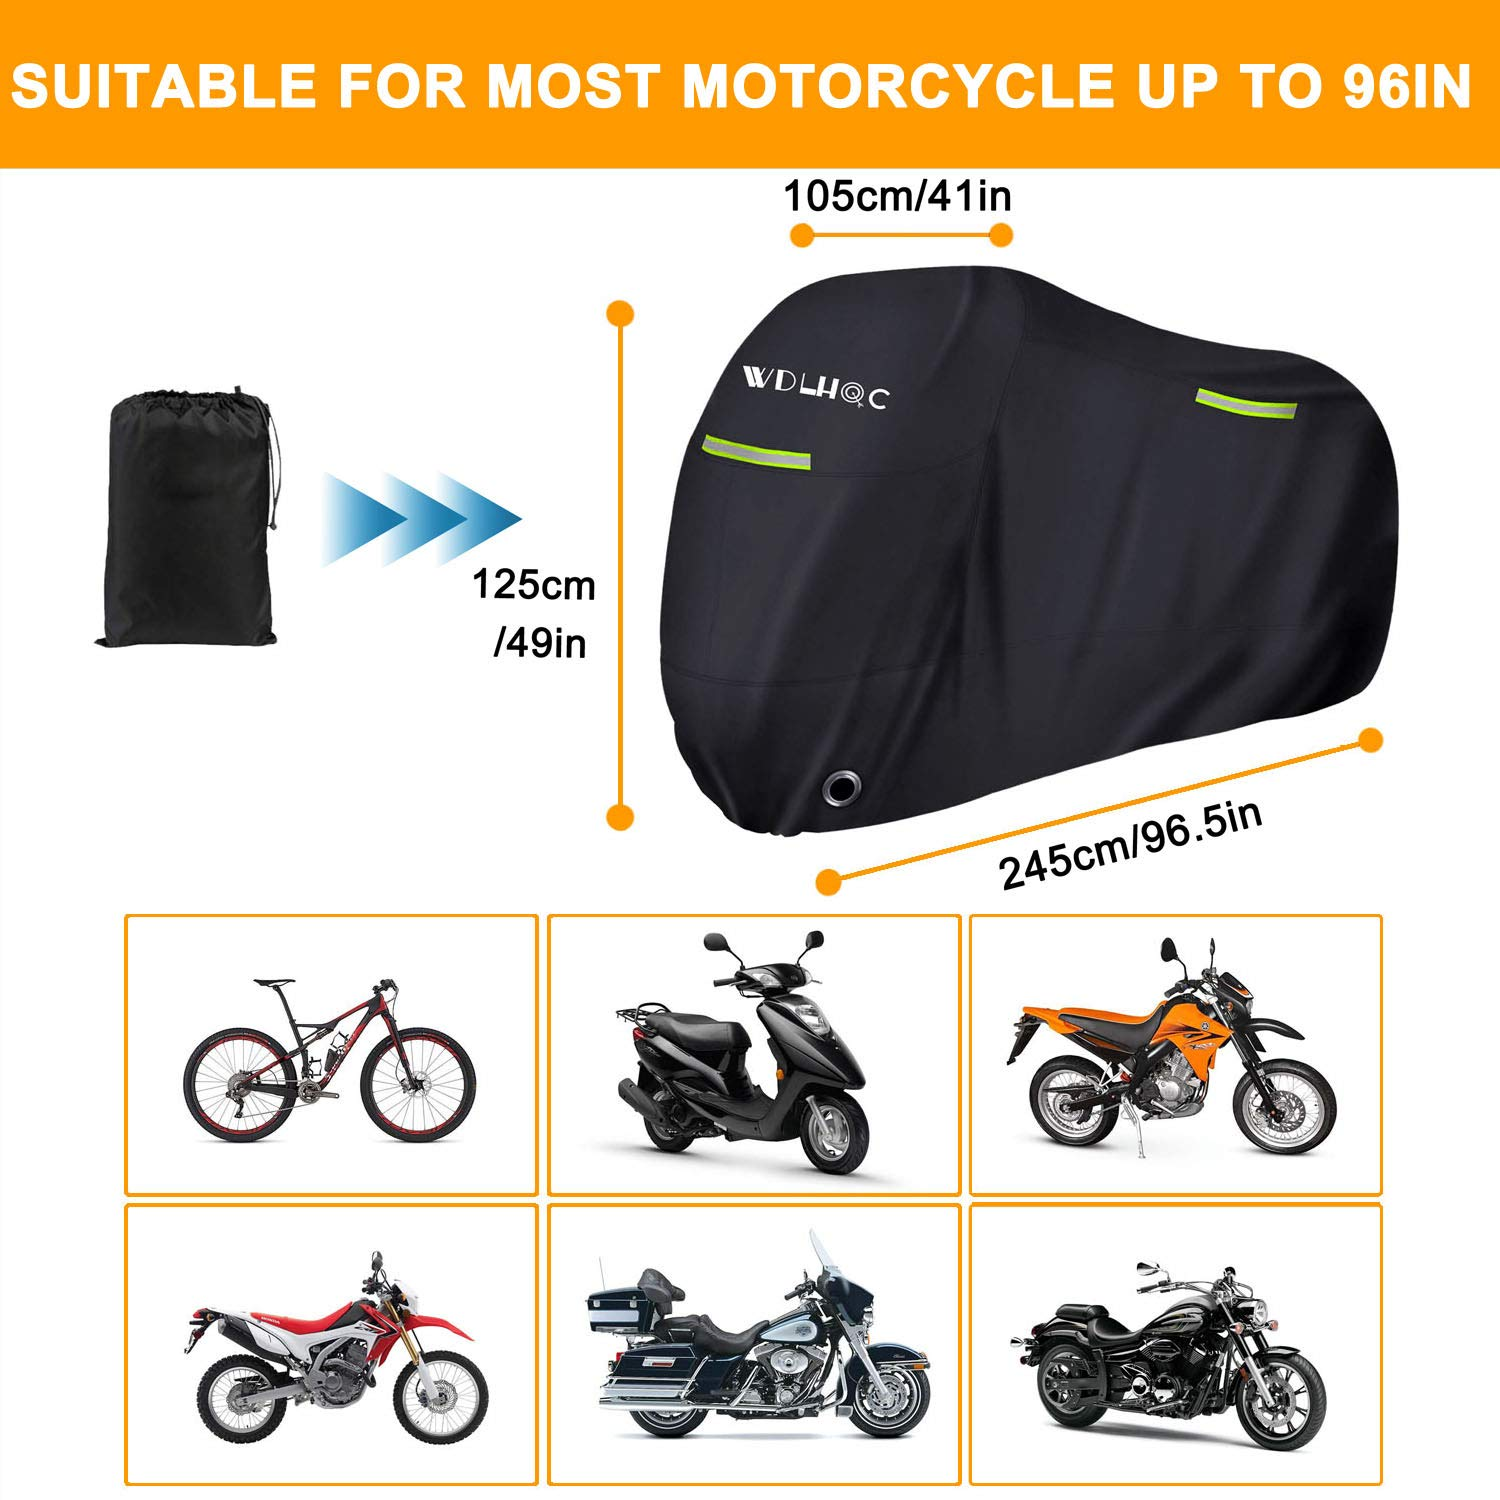 Motorcycle Cover,WDLHQC Waterproof Motorcycle Cover All Weather Outdoor Protection,Oxford Durable /& Tear Proof,Precision Fit for 96inch Motors